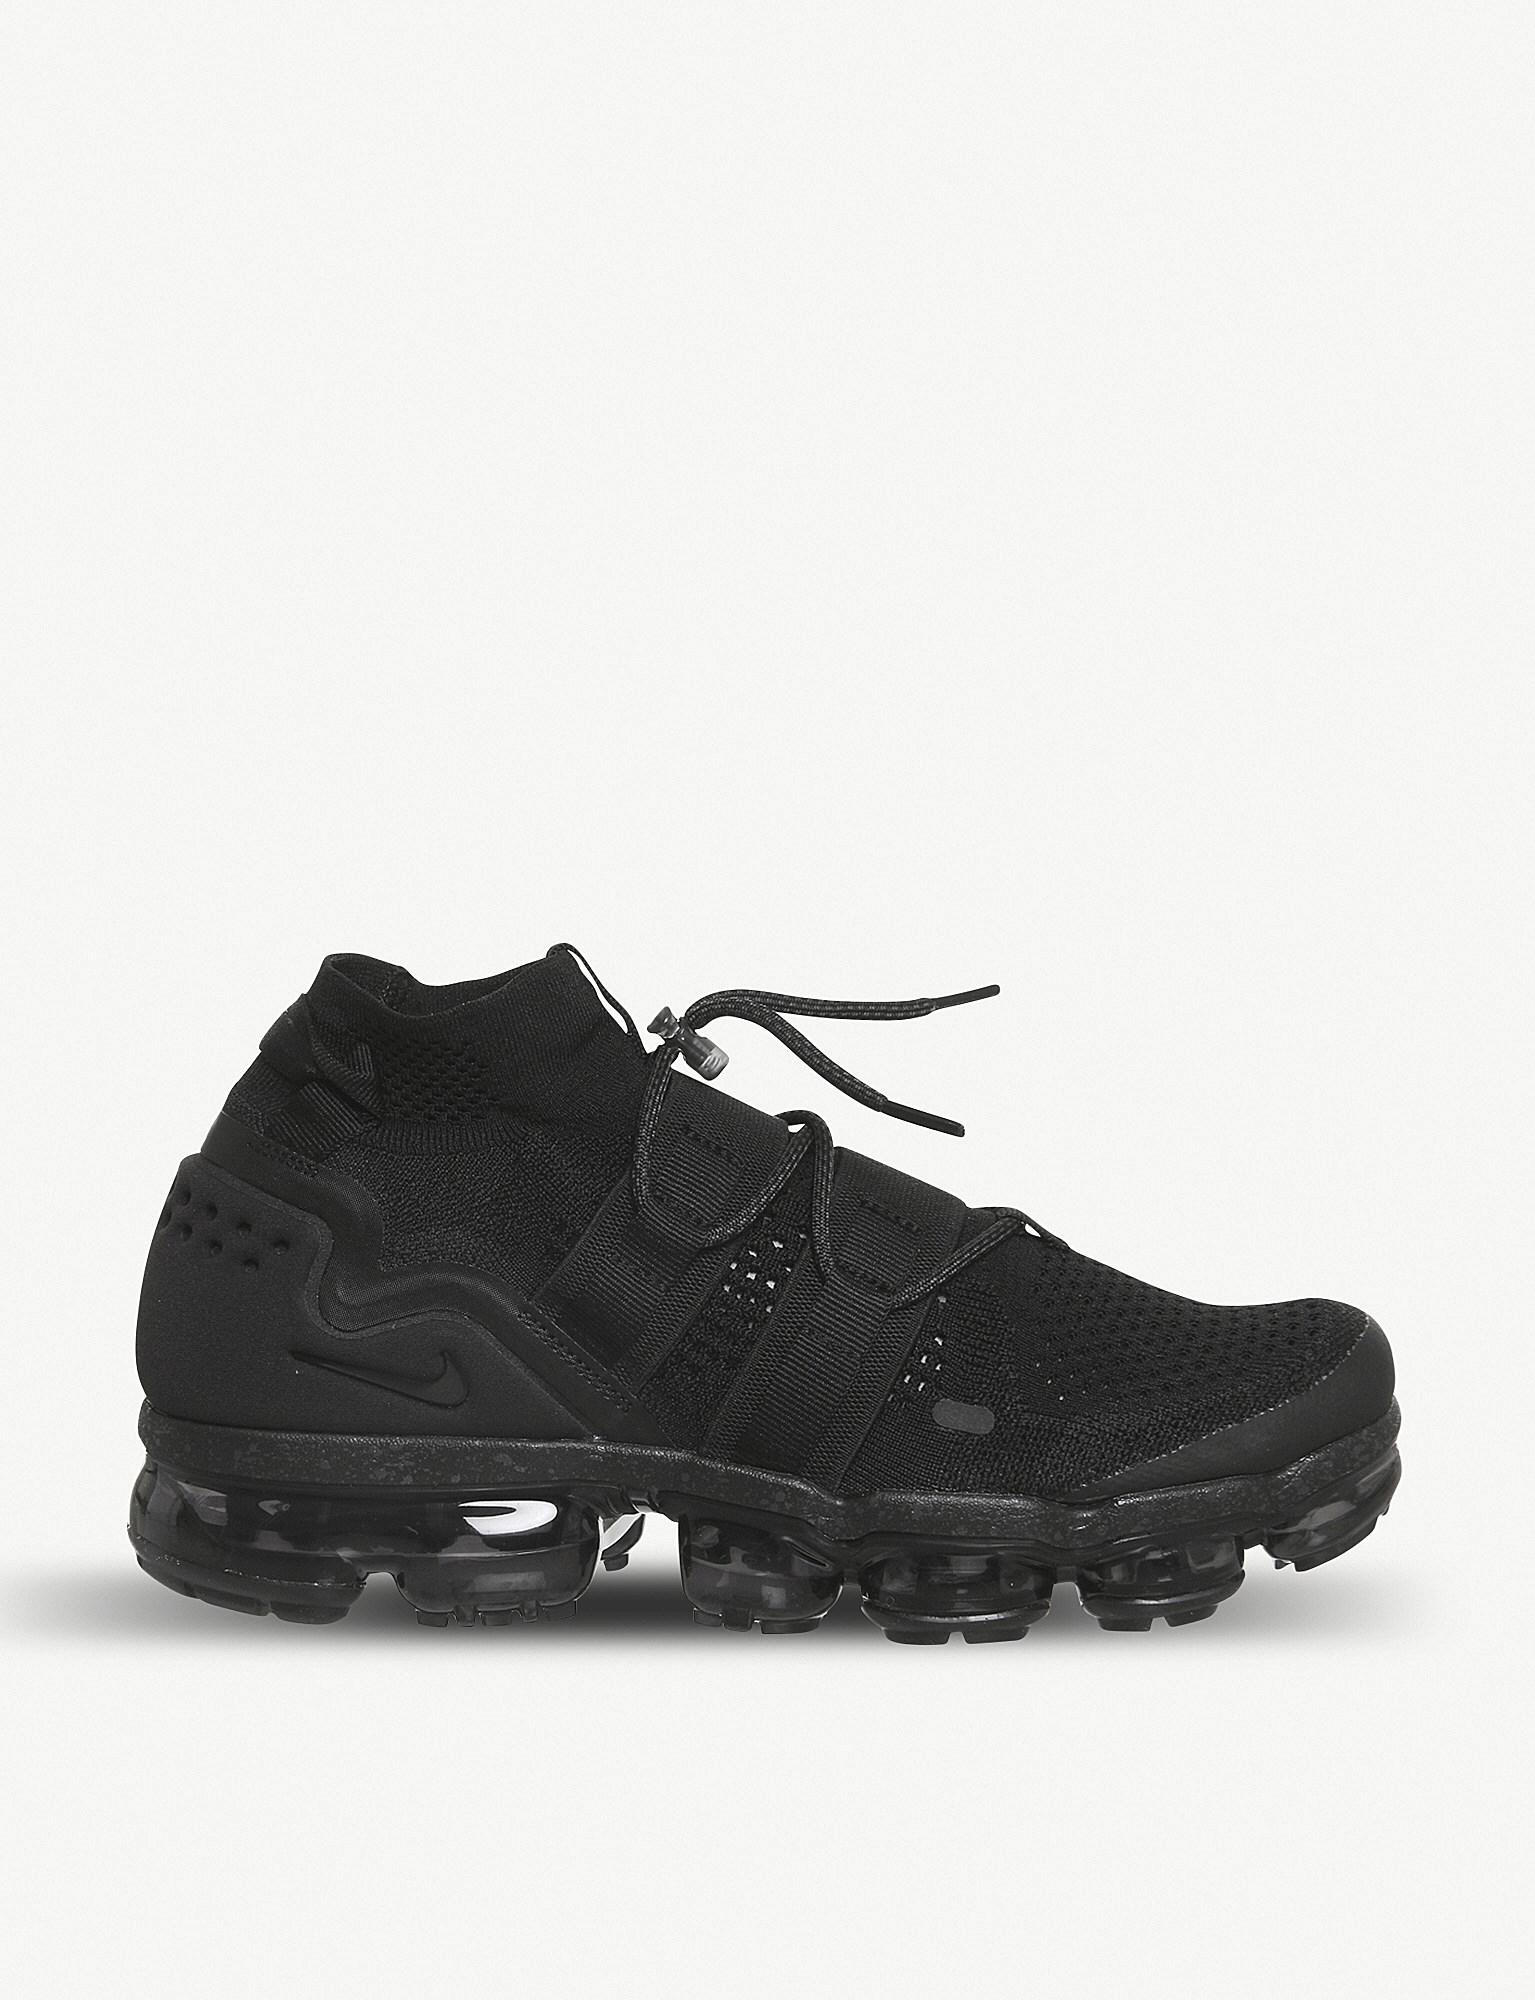 68140eeb142a8 Lyst - Nike Air Vapormax Flyknit Utility Trainers in Black for Men